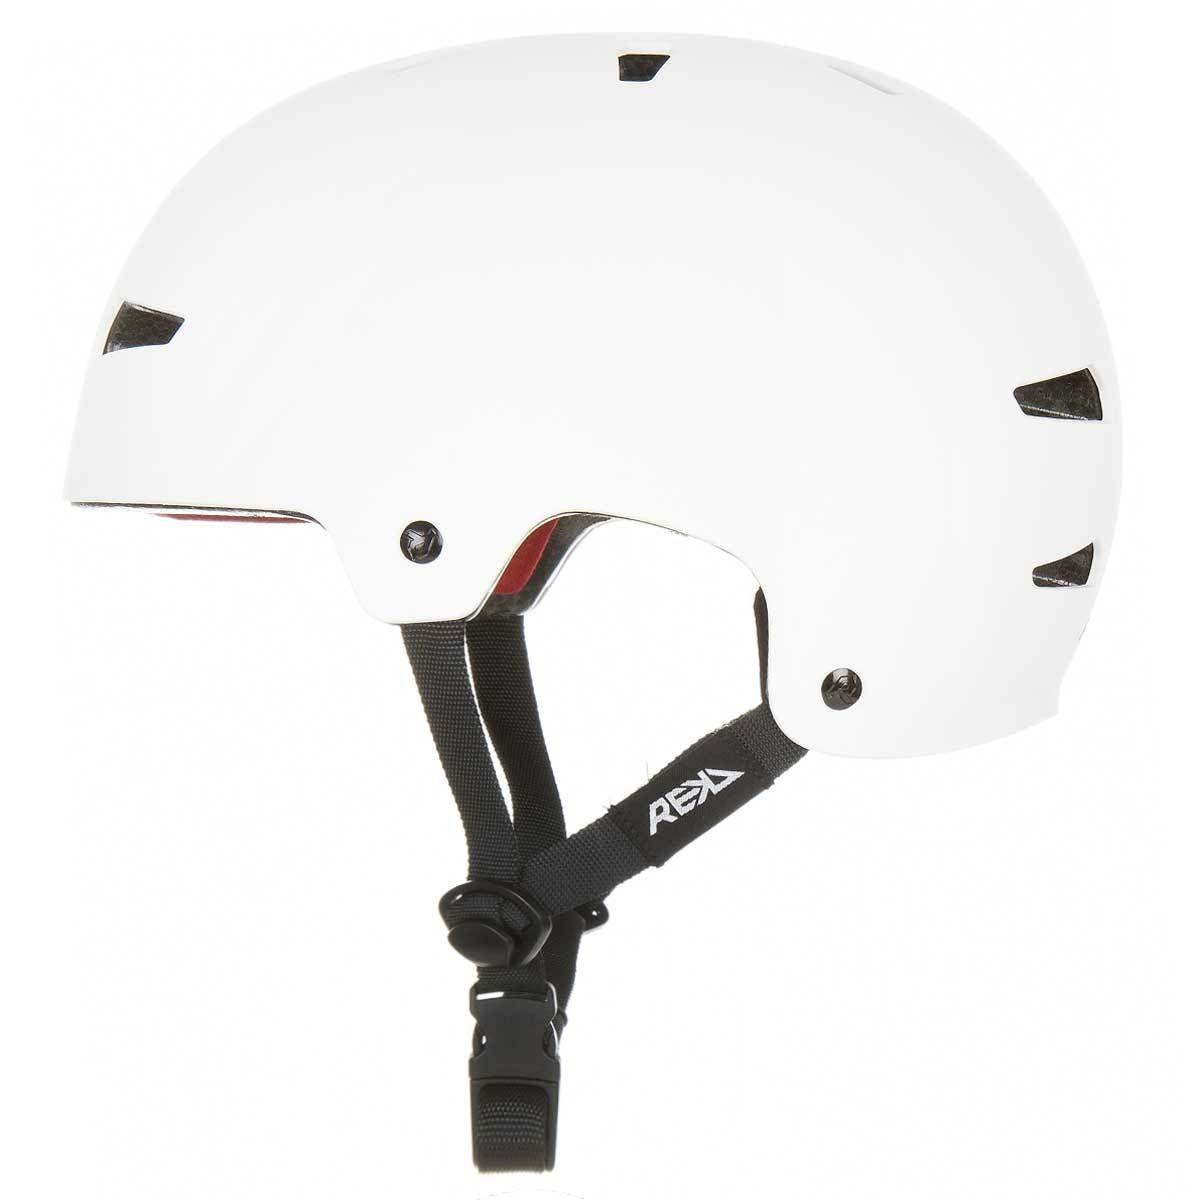 REKD Elite Icon Helmet White/Black - Safety Gear